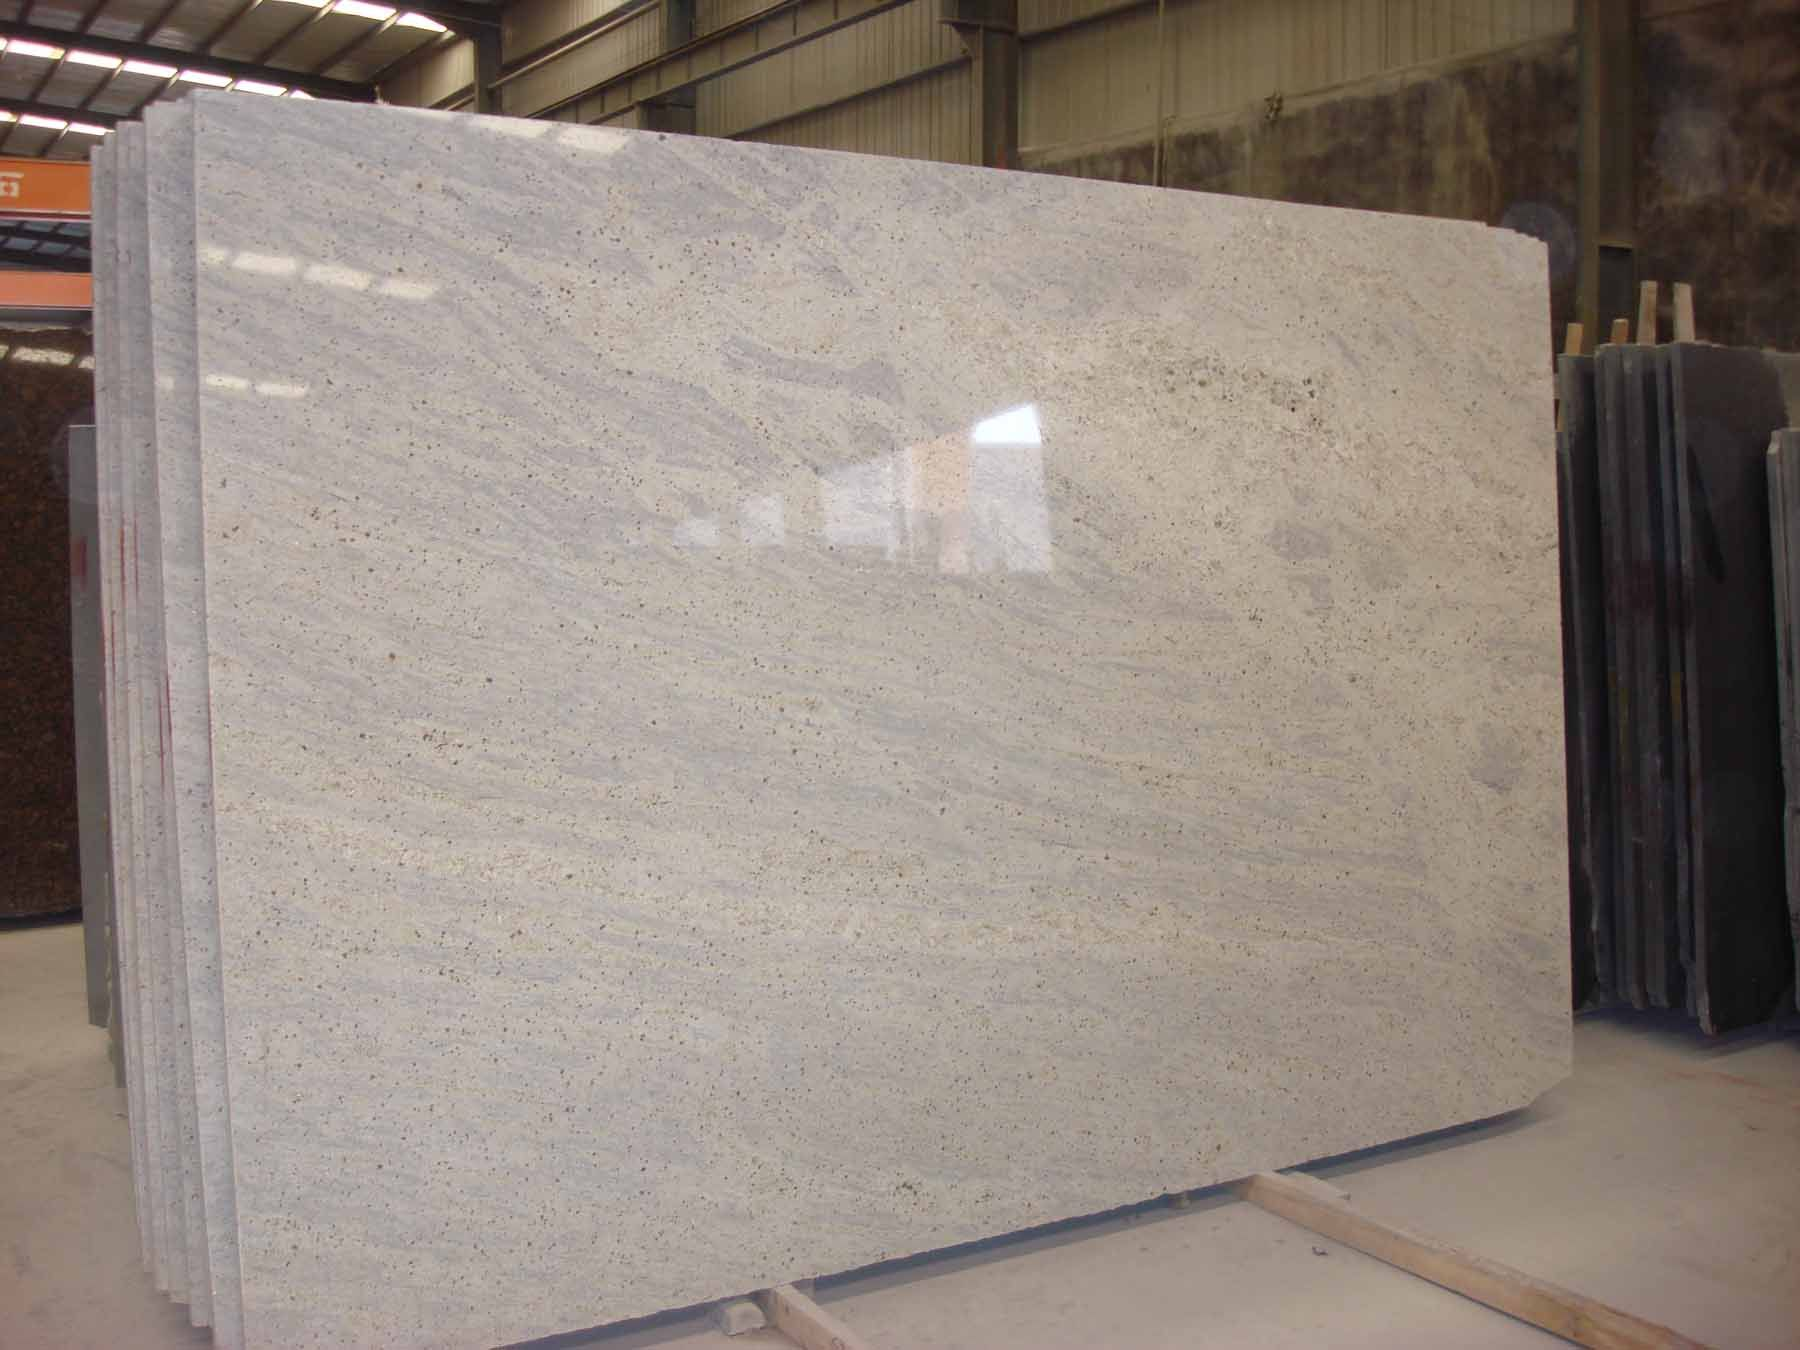 China kashmir white granite slab large image for kashmir white china kashmir white granite slab large image for kashmir white dailygadgetfo Gallery